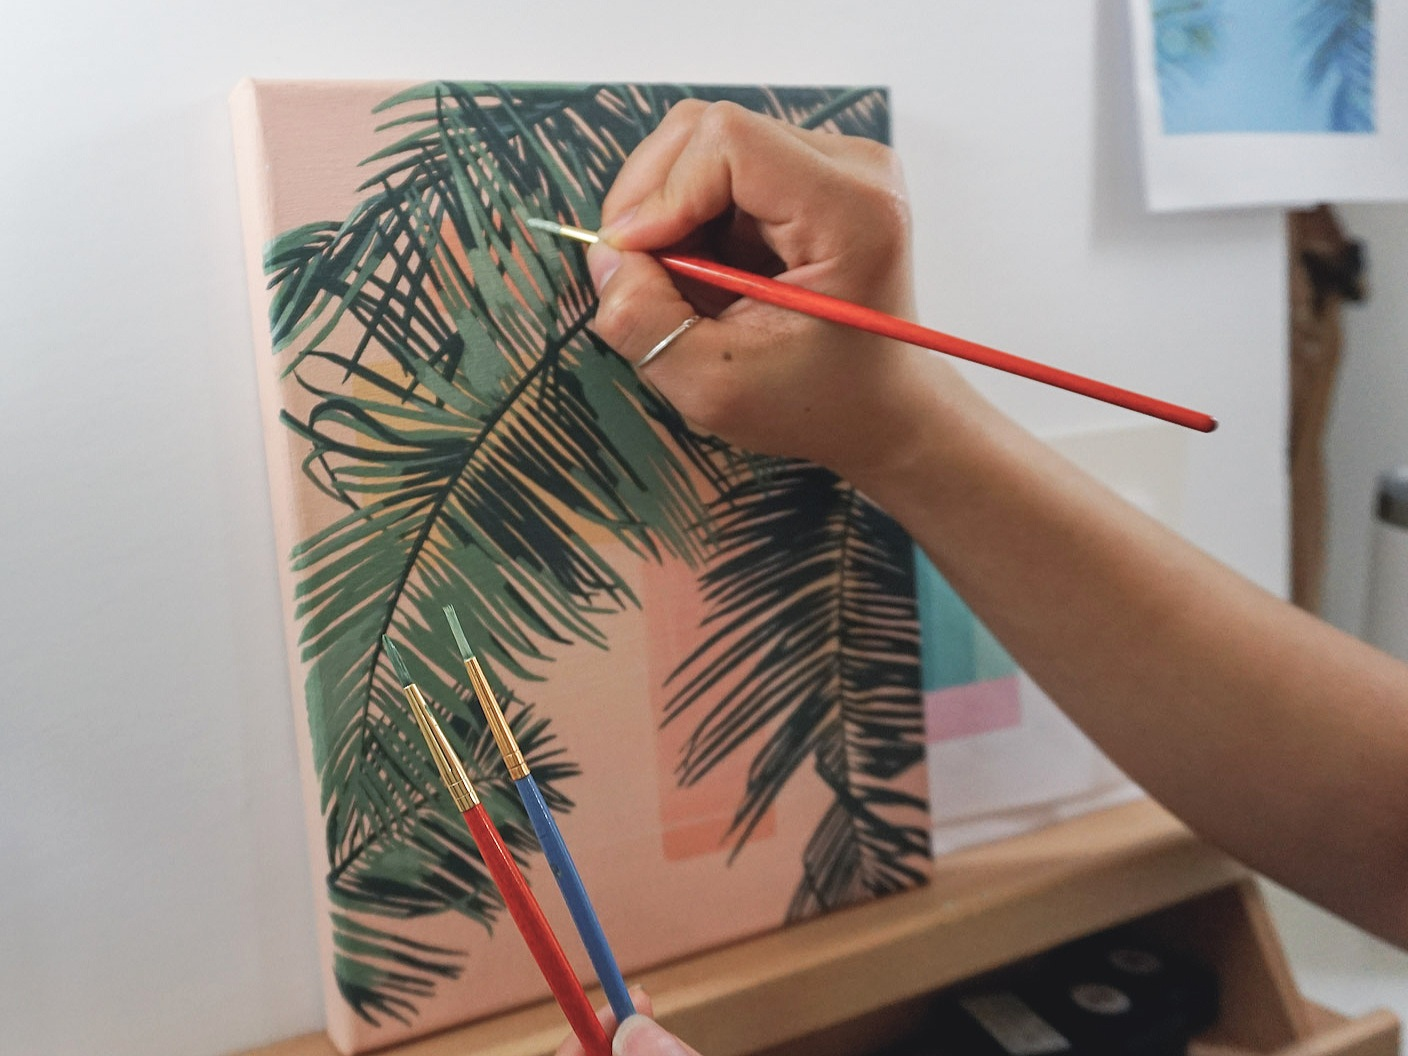 Kaiffeinated_PaintwithKai01_PalmTreePainting_05.jpg